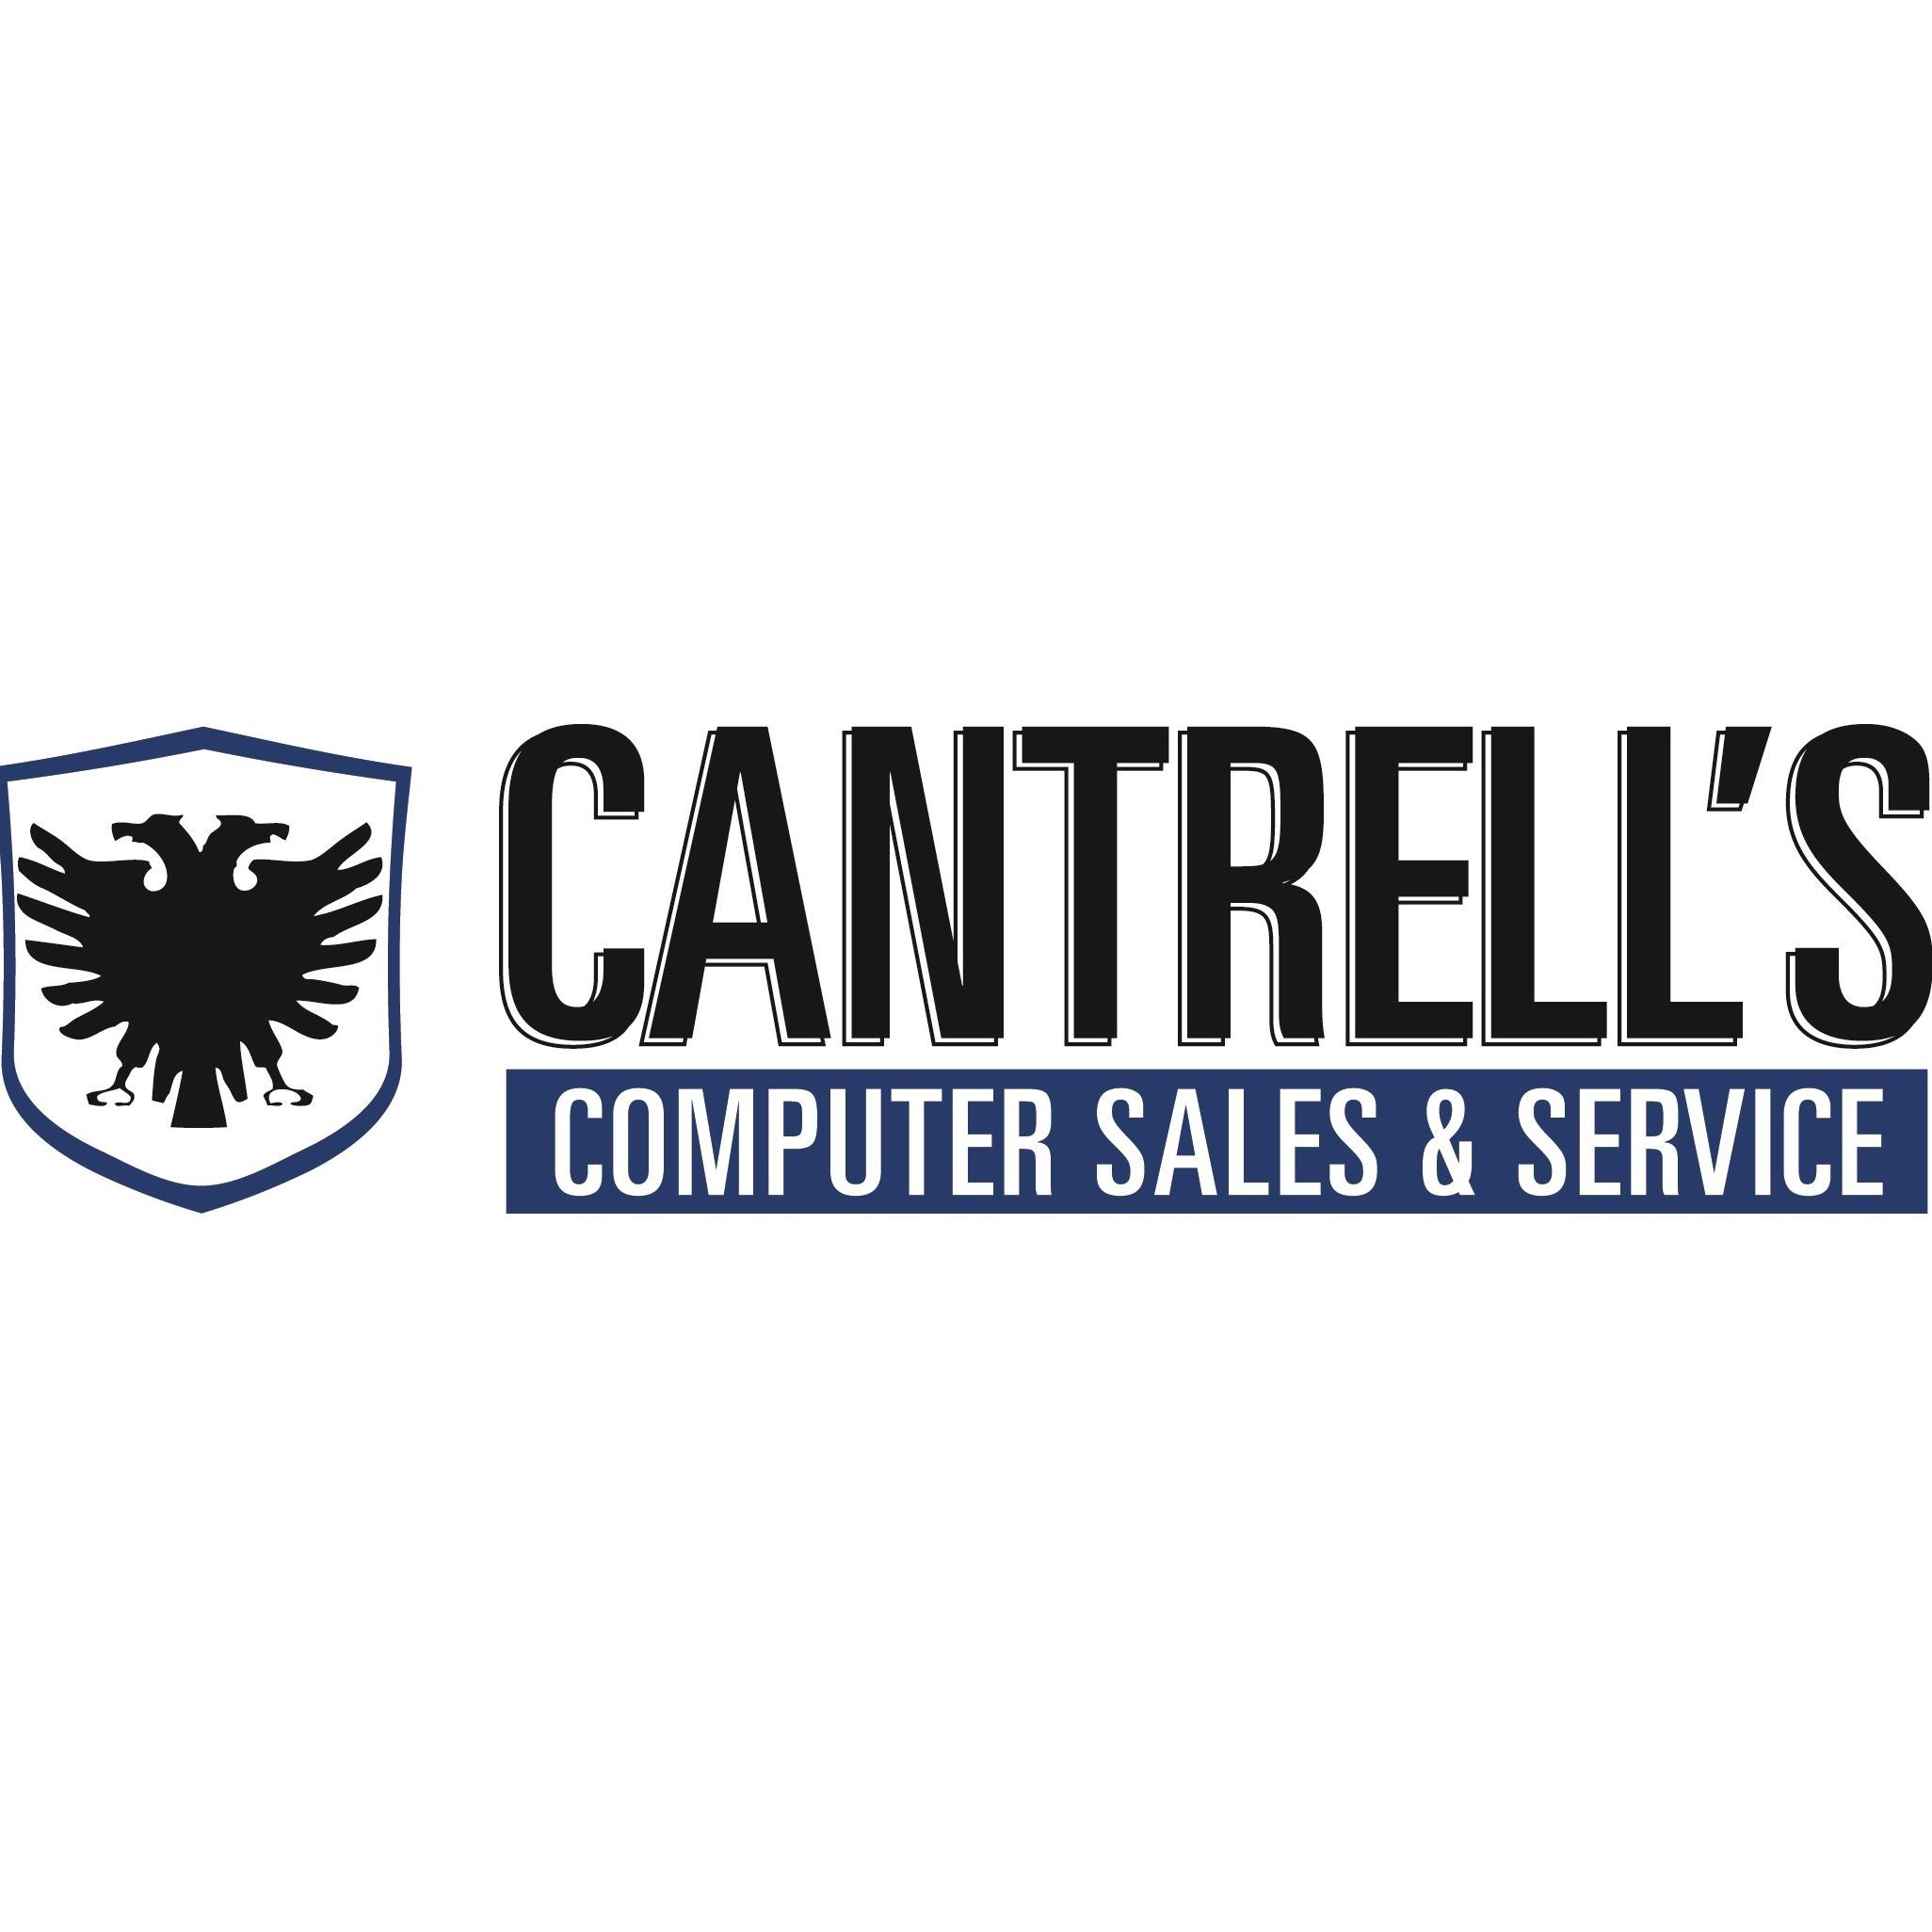 Cantrell's Computer Sales & Service